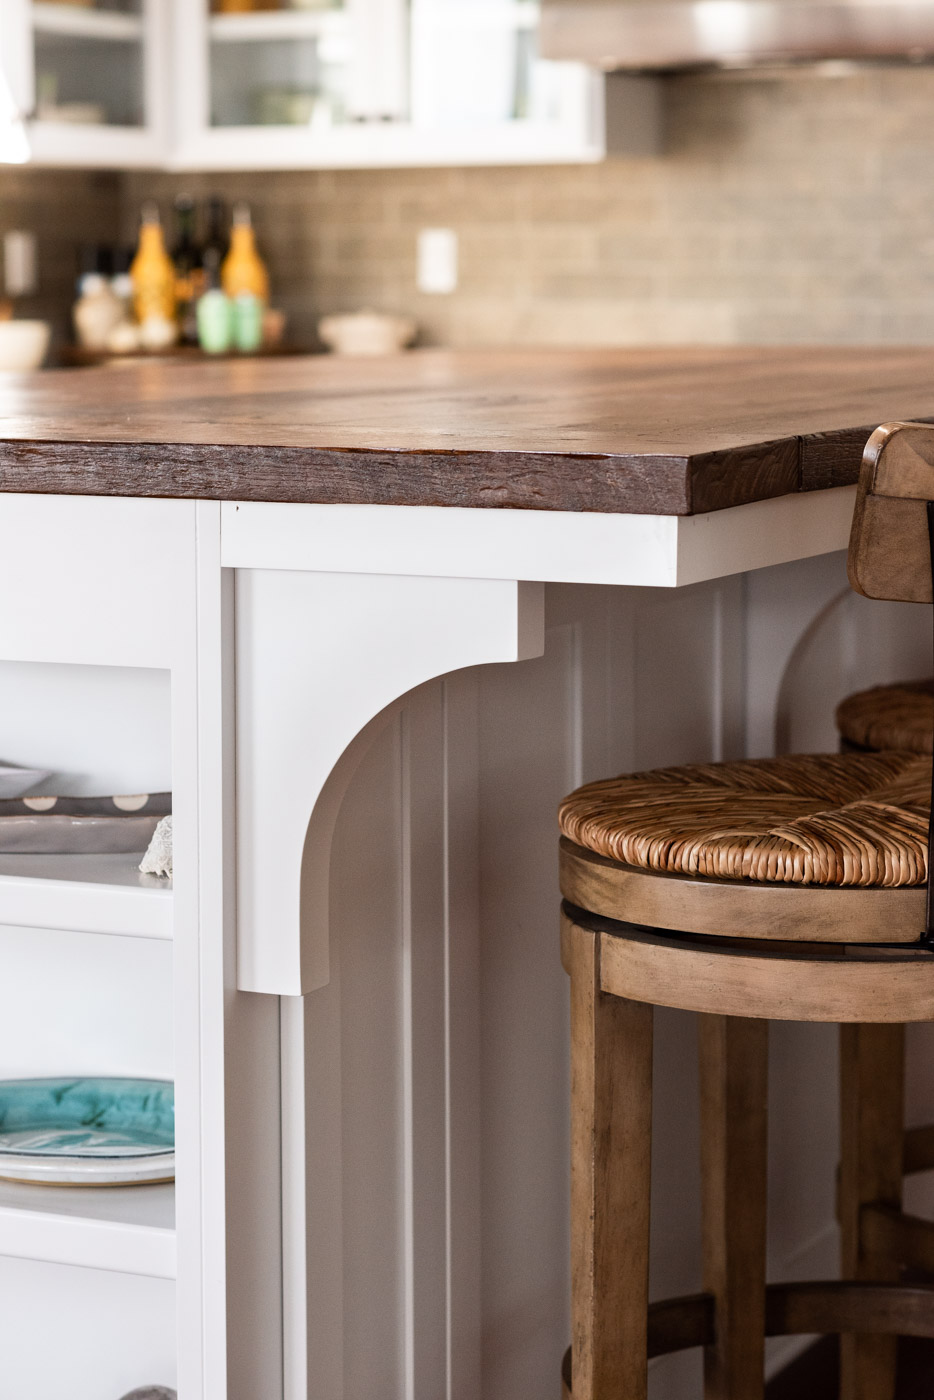 Coastal Craftsman kitchen with custom white painted shaker cabinets an corbels